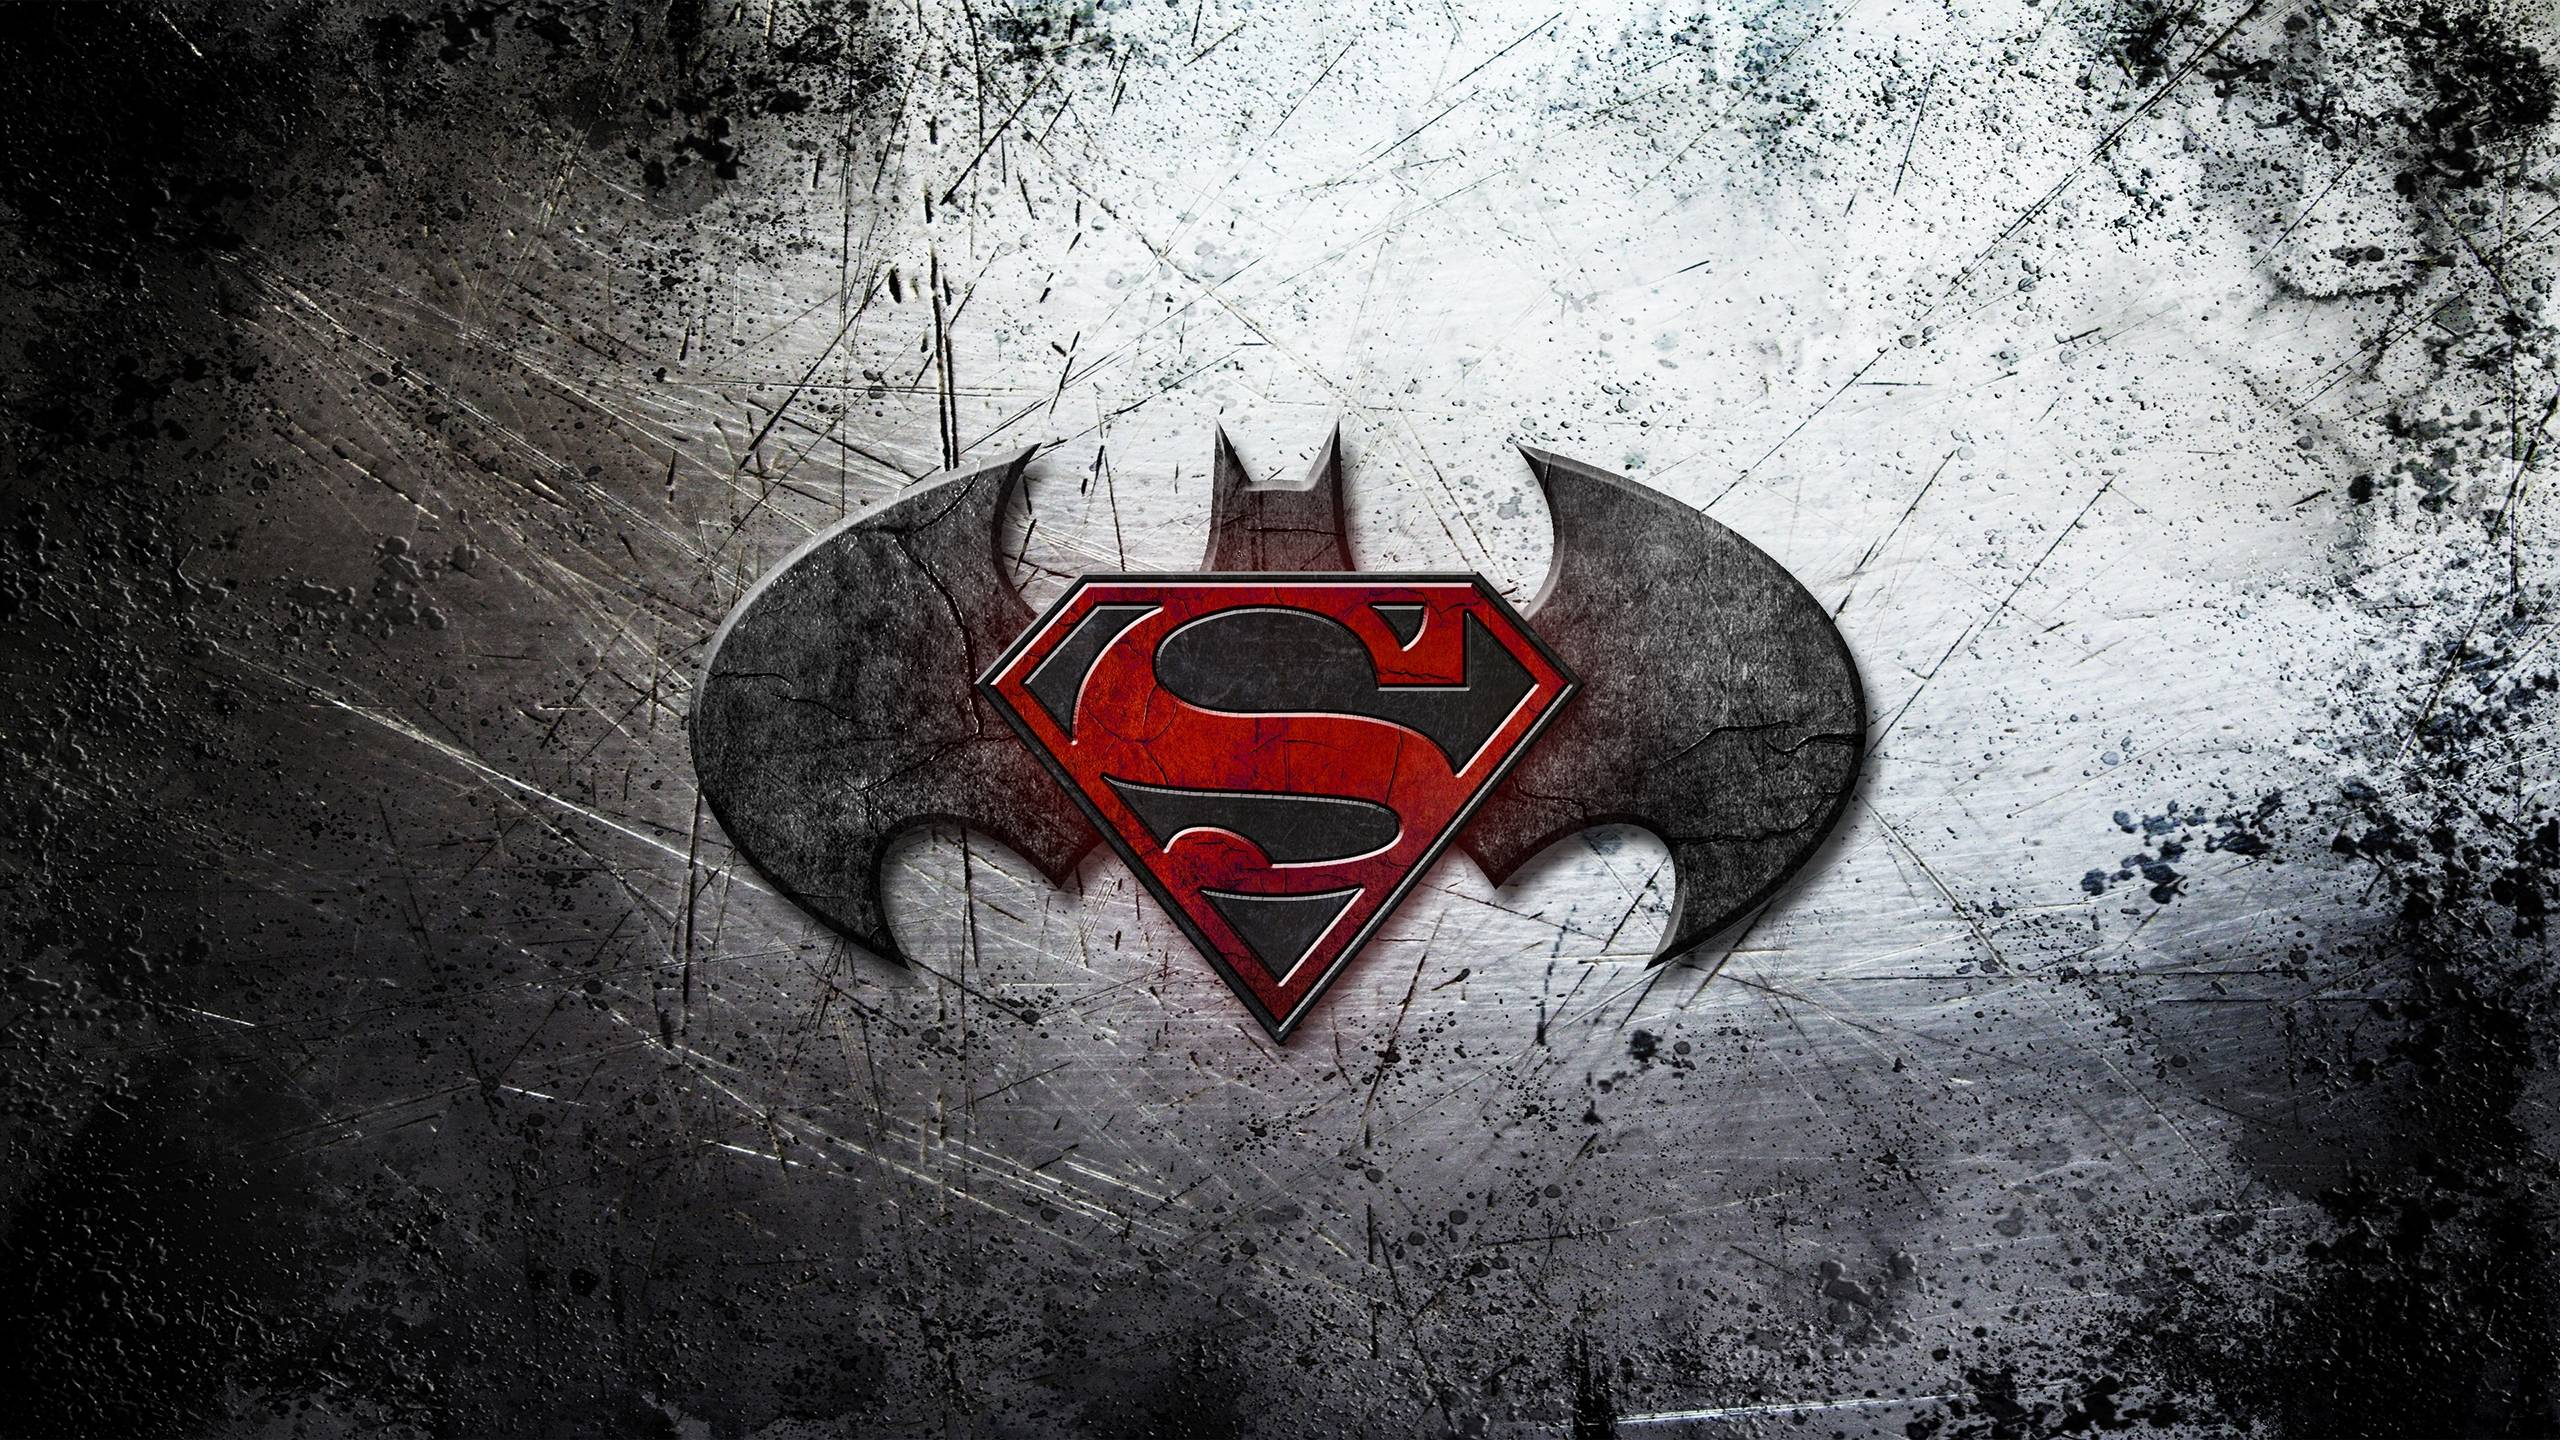 batman vs superman logo wallpaper id 5158 frenzia